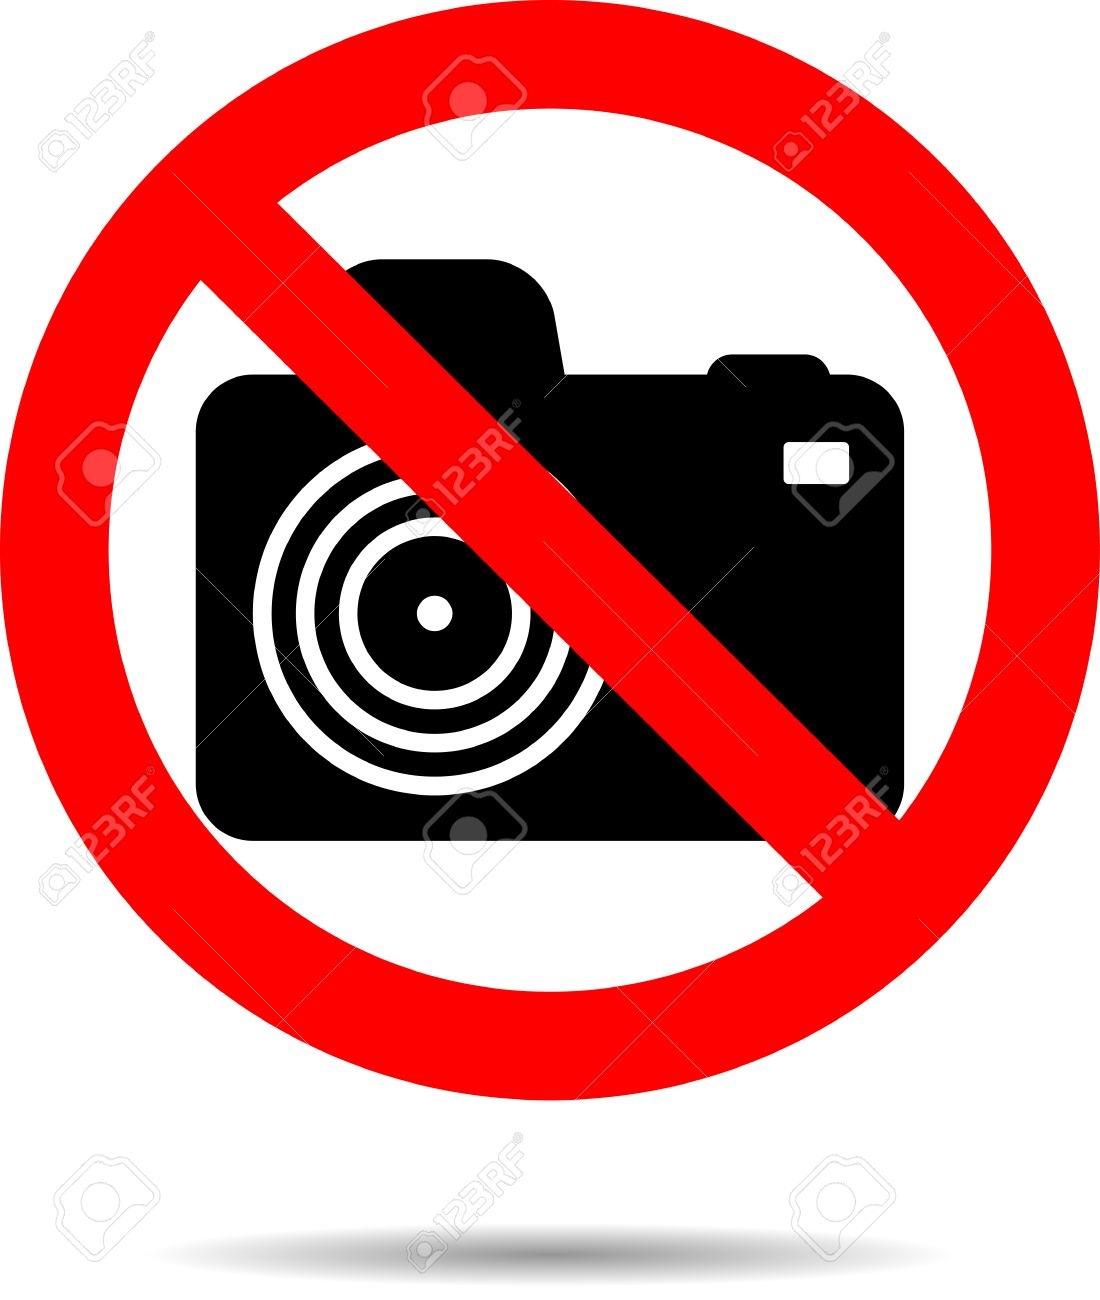 1100x1300 Ban Photo Icon Label. Photographing No Forbidden And Warning